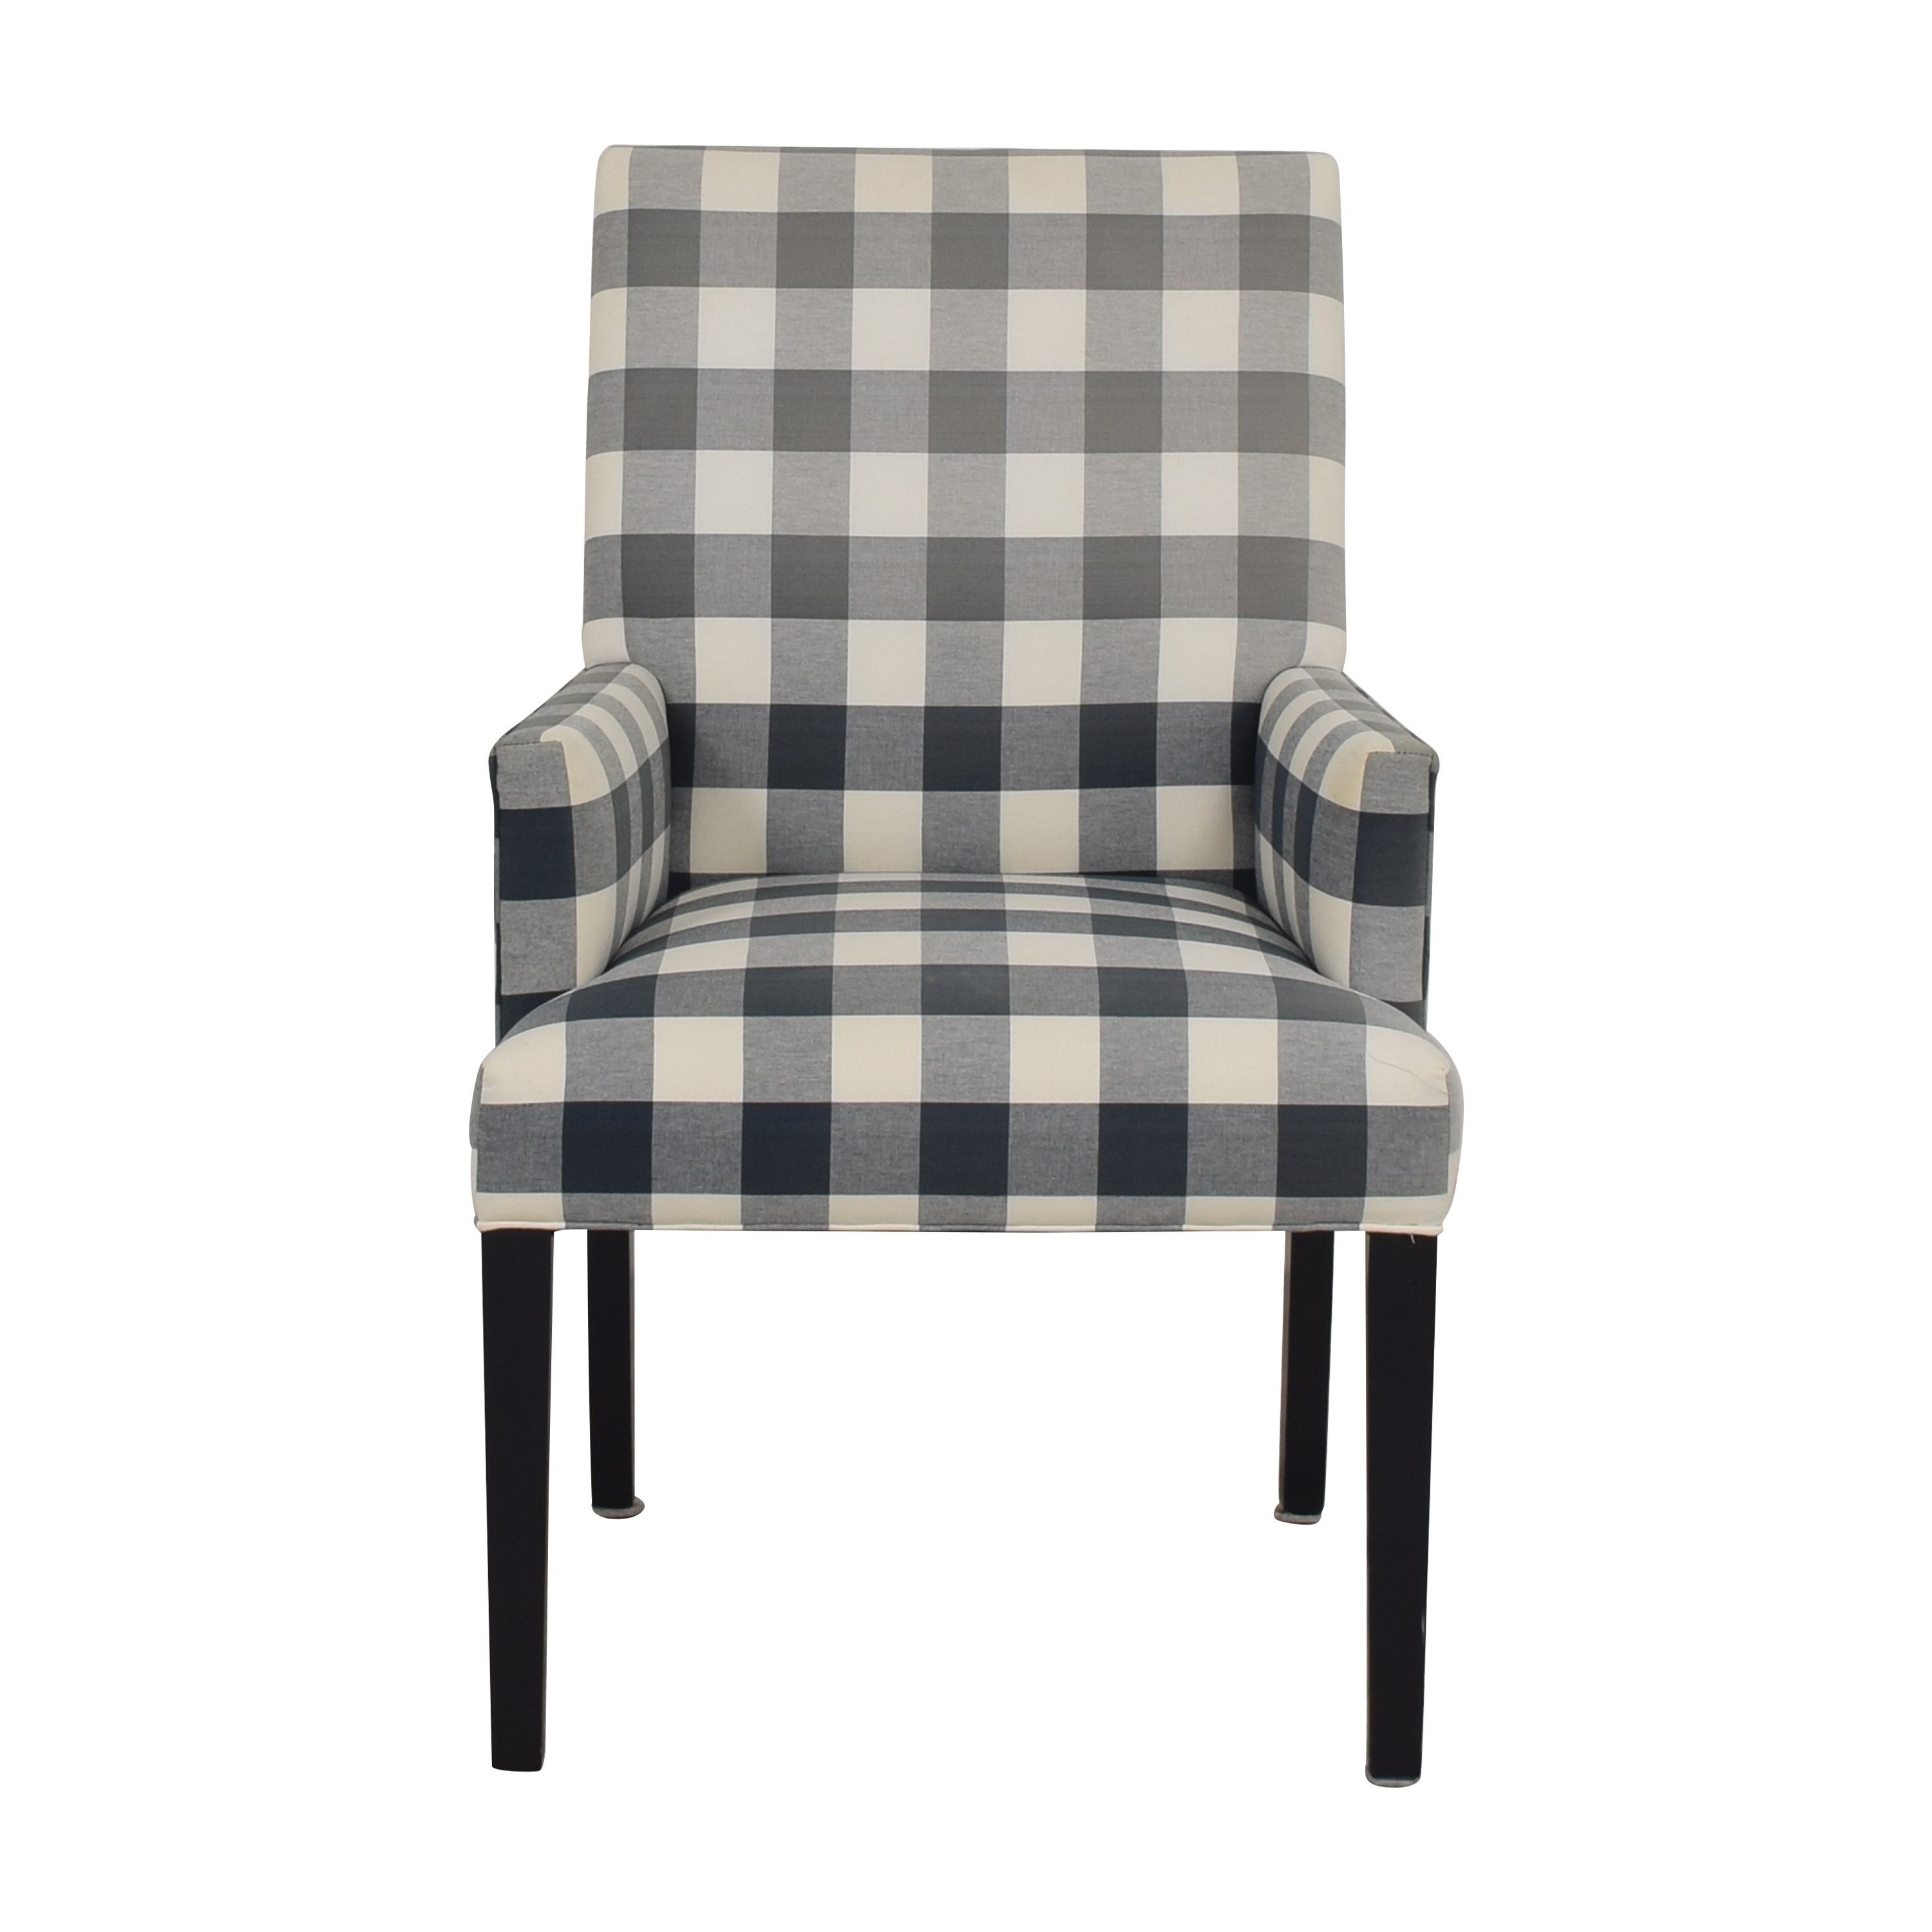 Ethan Allen Thomas Plaid Armchair / Chairs